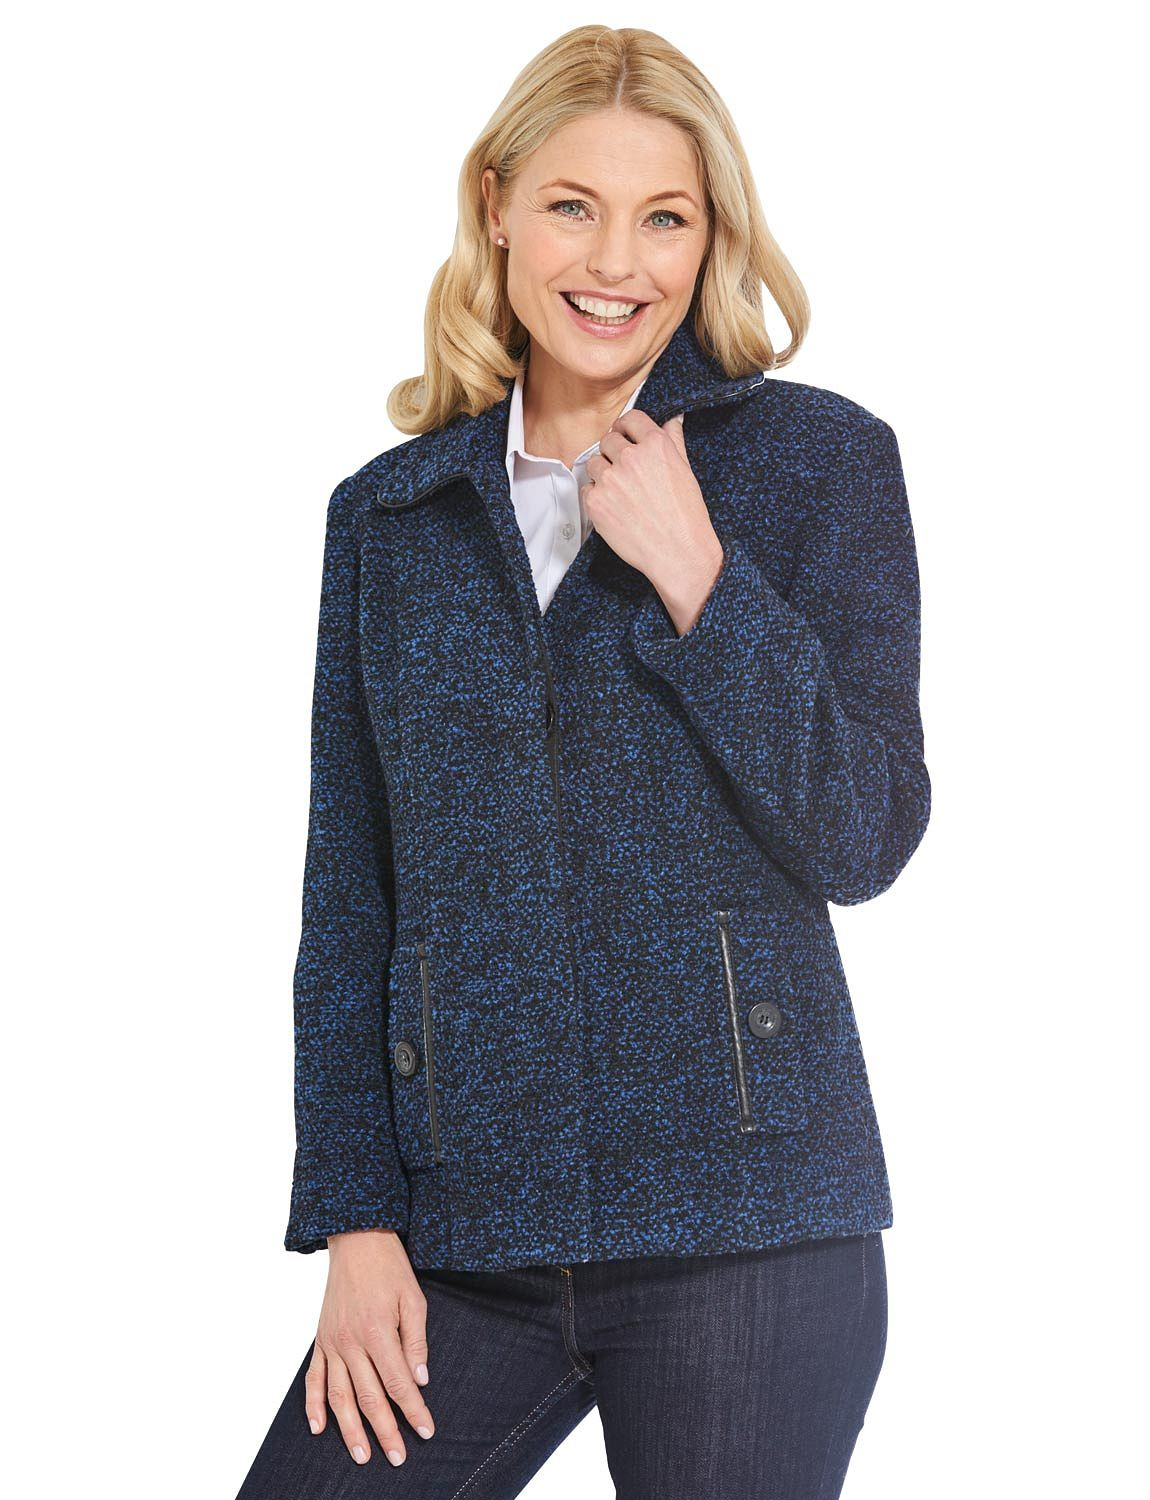 Find boucle jackets at ShopStyle. Shop the latest collection of boucle jackets from the most popular stores - all in one place.